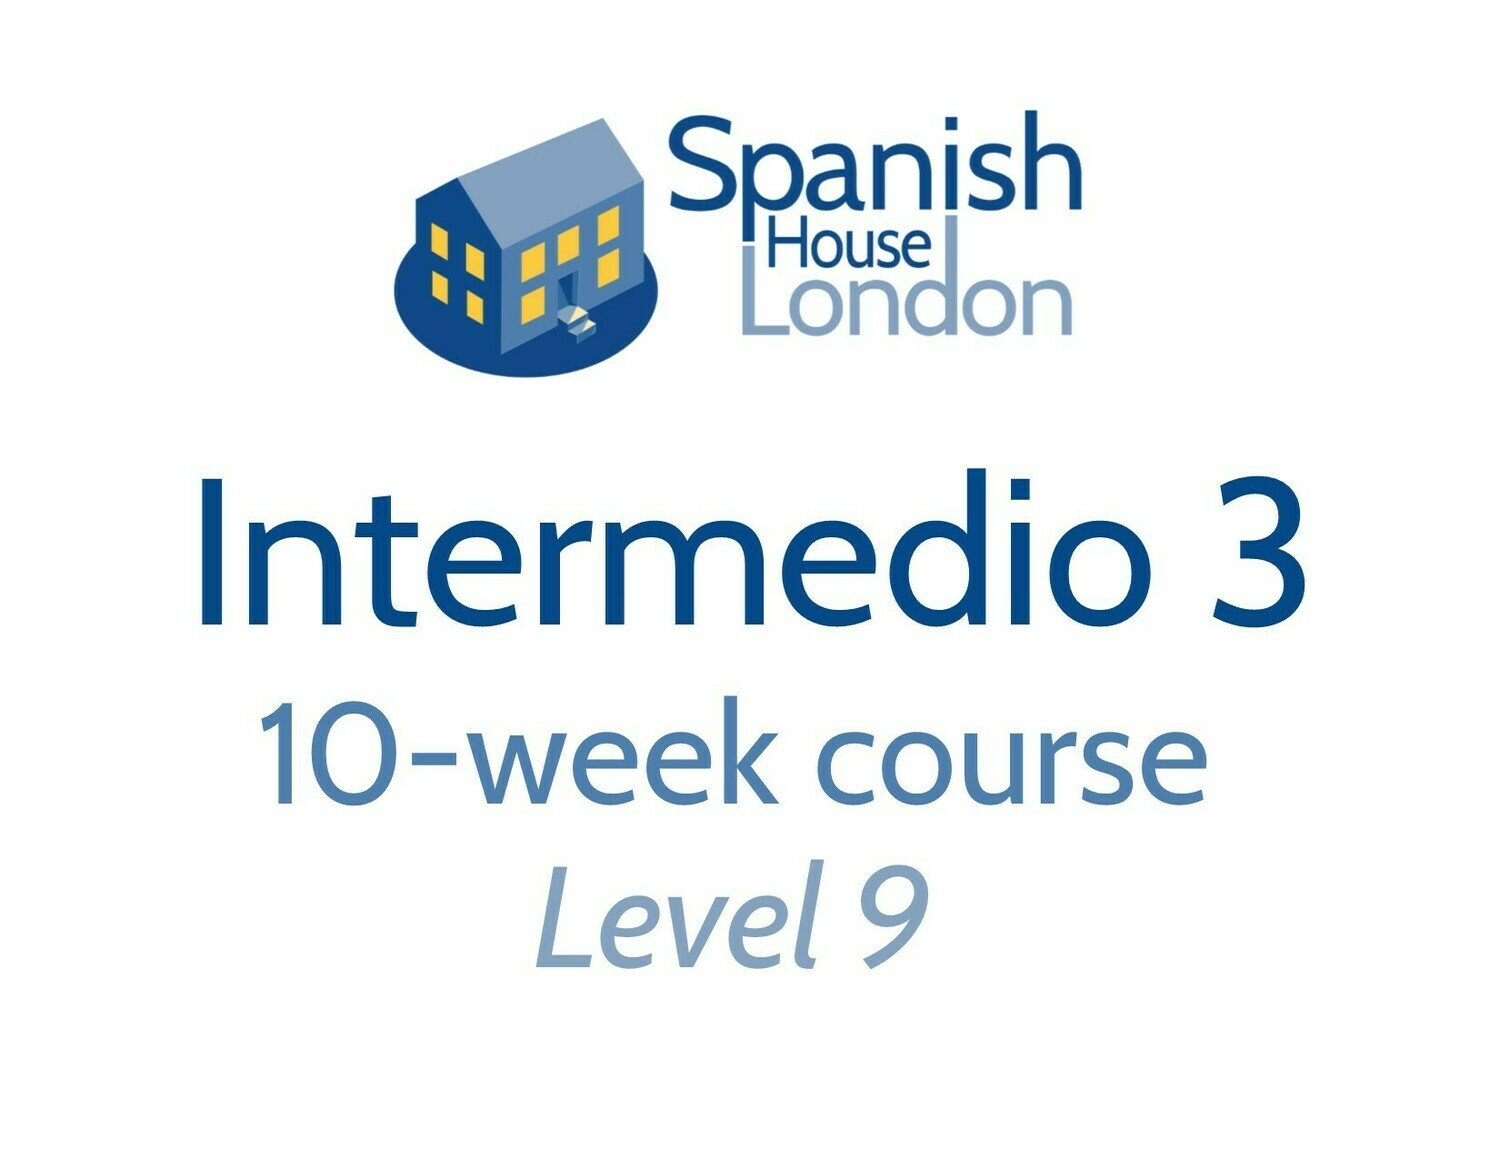 Intermedio 3 Course starting on 6th January at 7.30pm